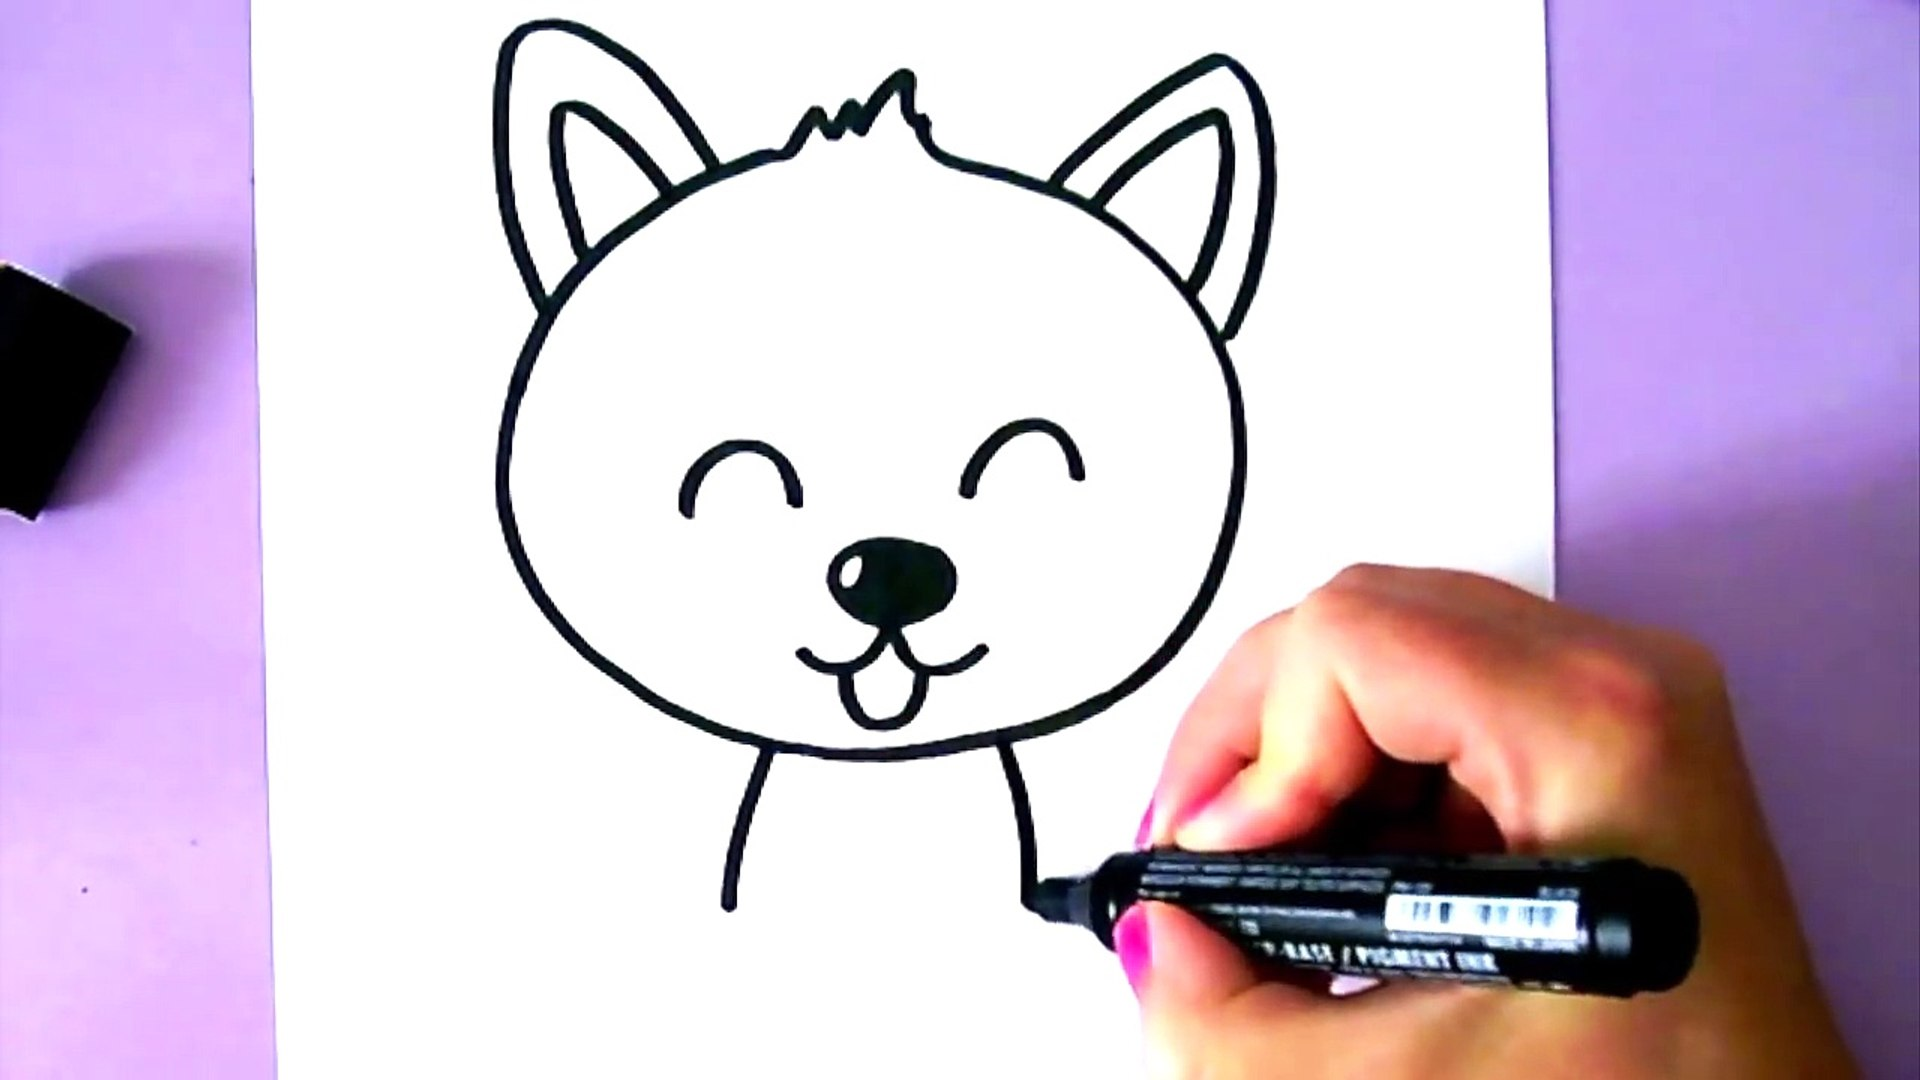 Comment Dessiner Un Chien Kawaii Rsspfye4tb8 Video Dailymotion